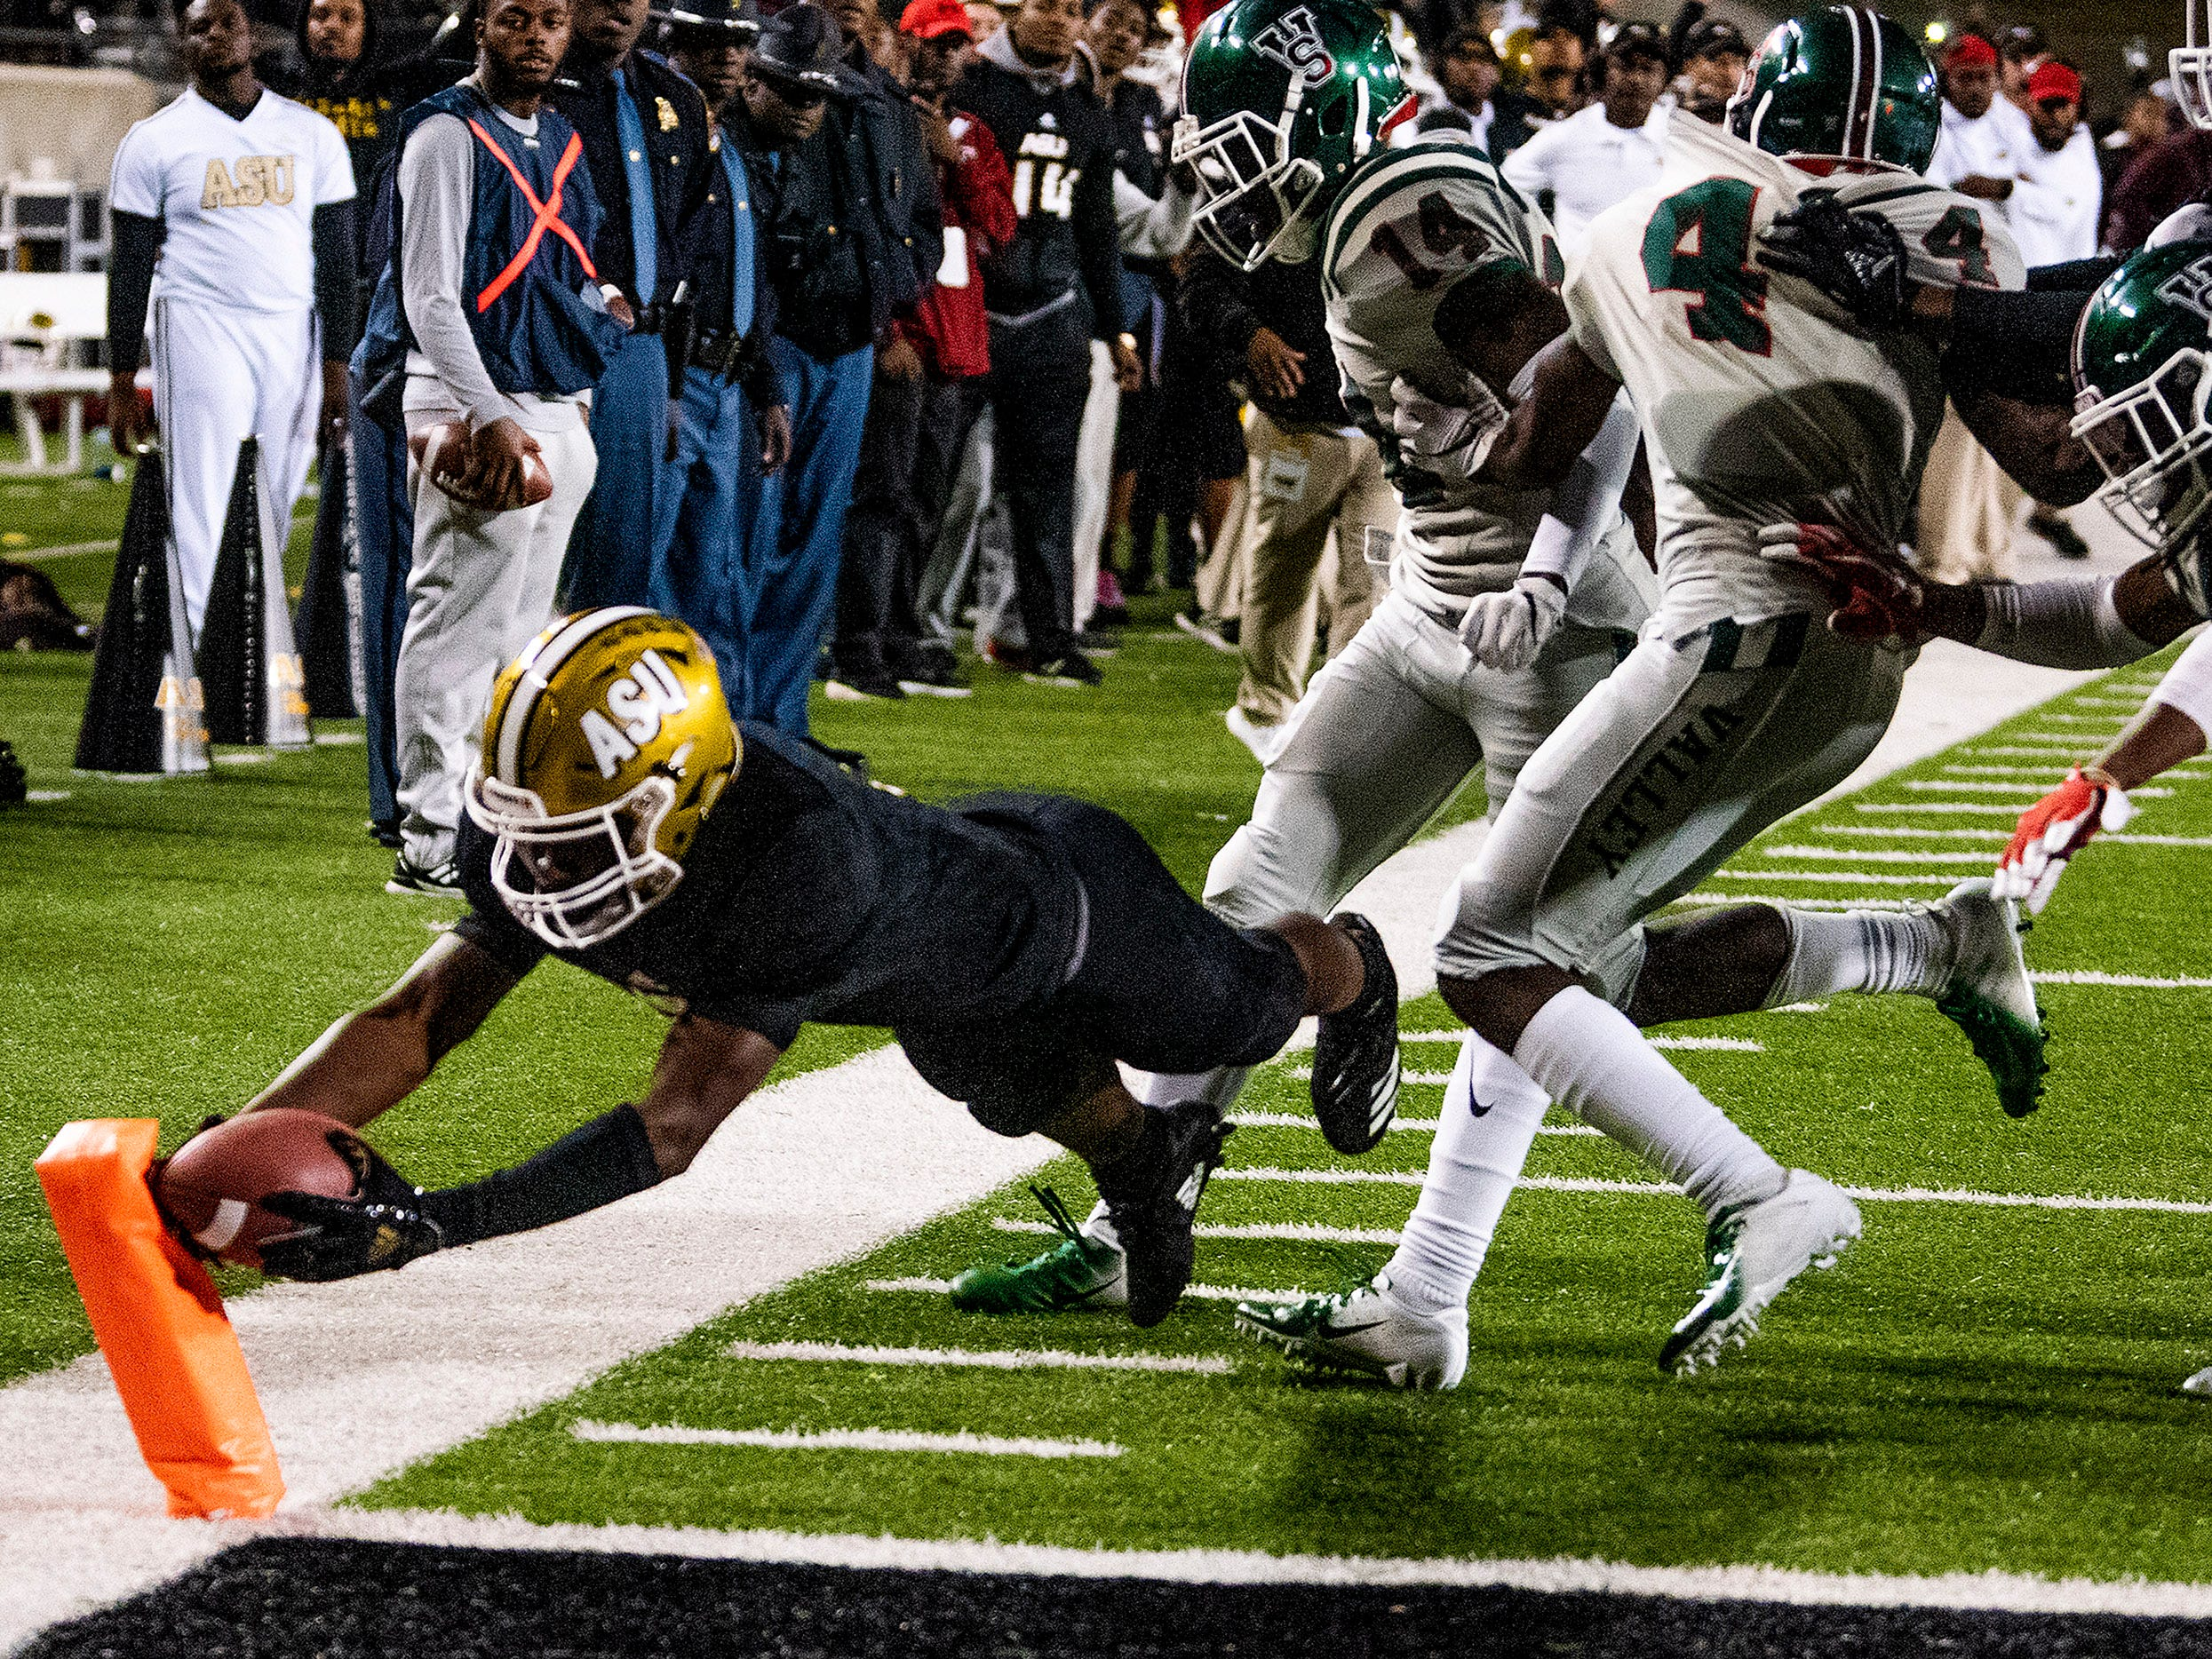 Alabama State University wide receiver Jeremiah Hixon (1)  dives for the pylon as he scores the game winning touchdown in overtime against Mississippi Valley State in the Turkey Day Classic at Hornet Stadium on the ASU campus in Montgomery, Ala., on Thanksgiving Day, Thursday November 22, 2018.